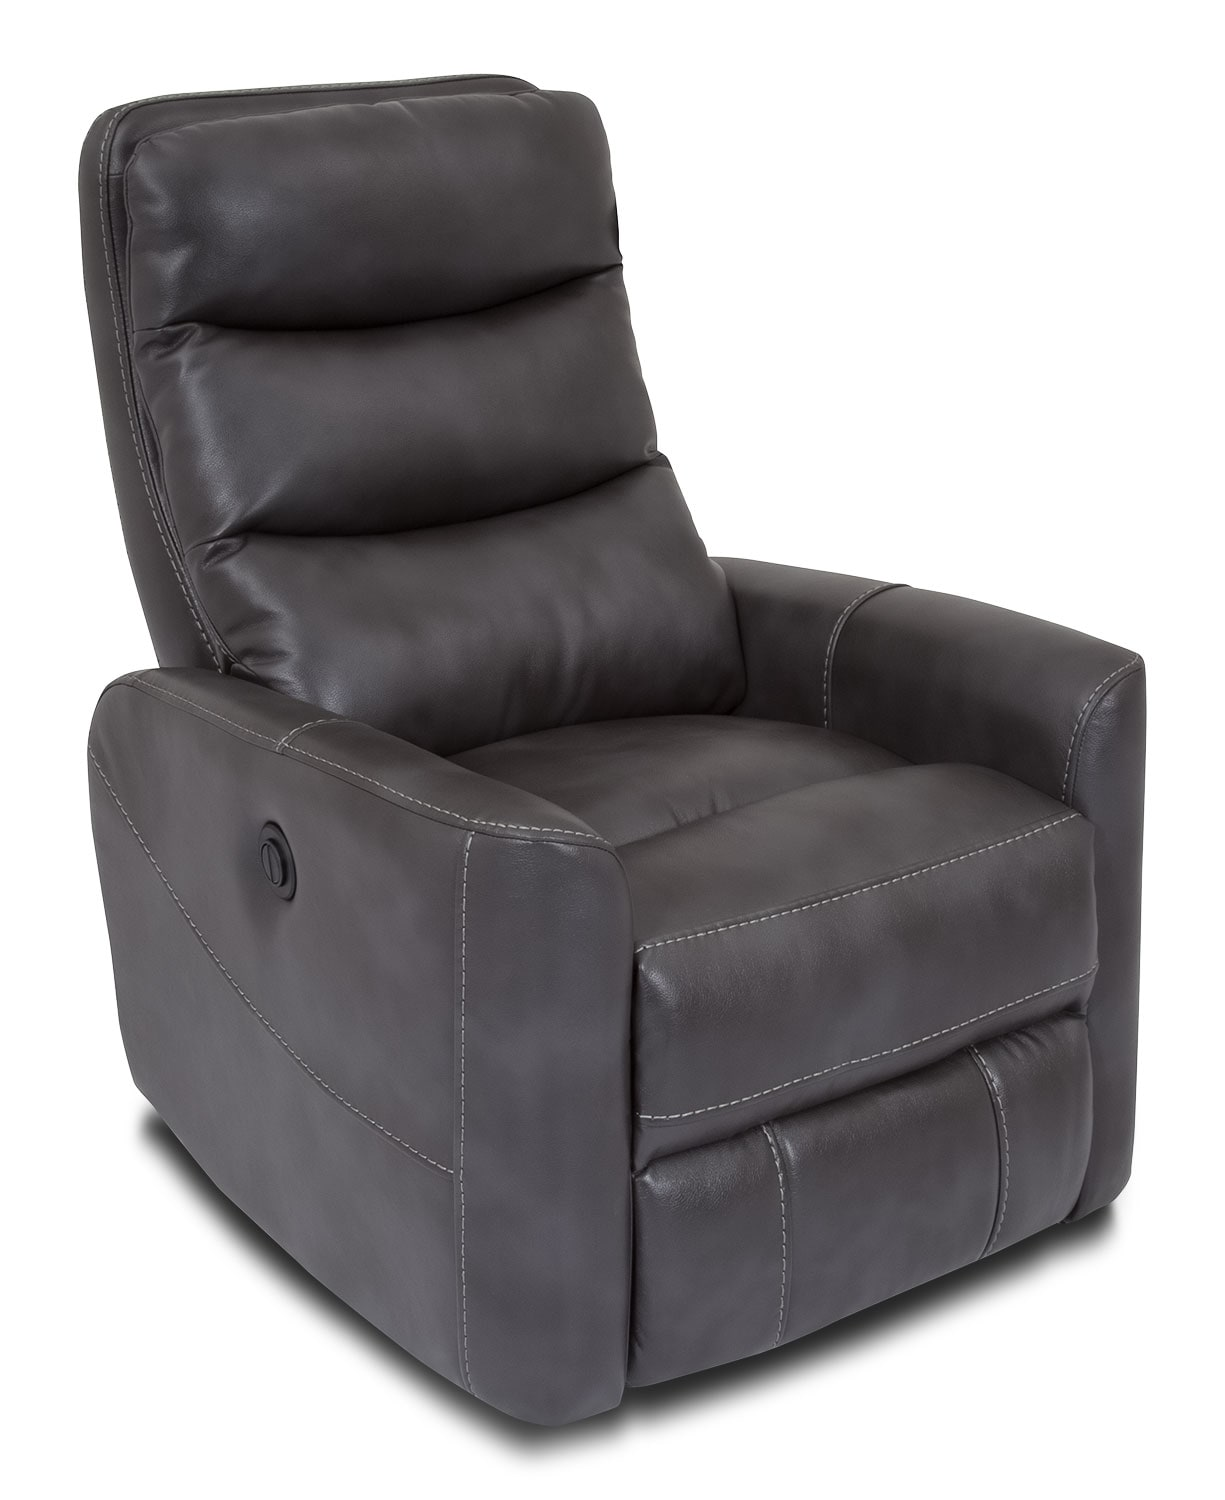 Living Room Furniture - Quinn Leather-Look Fabric Power Recliner – Grey